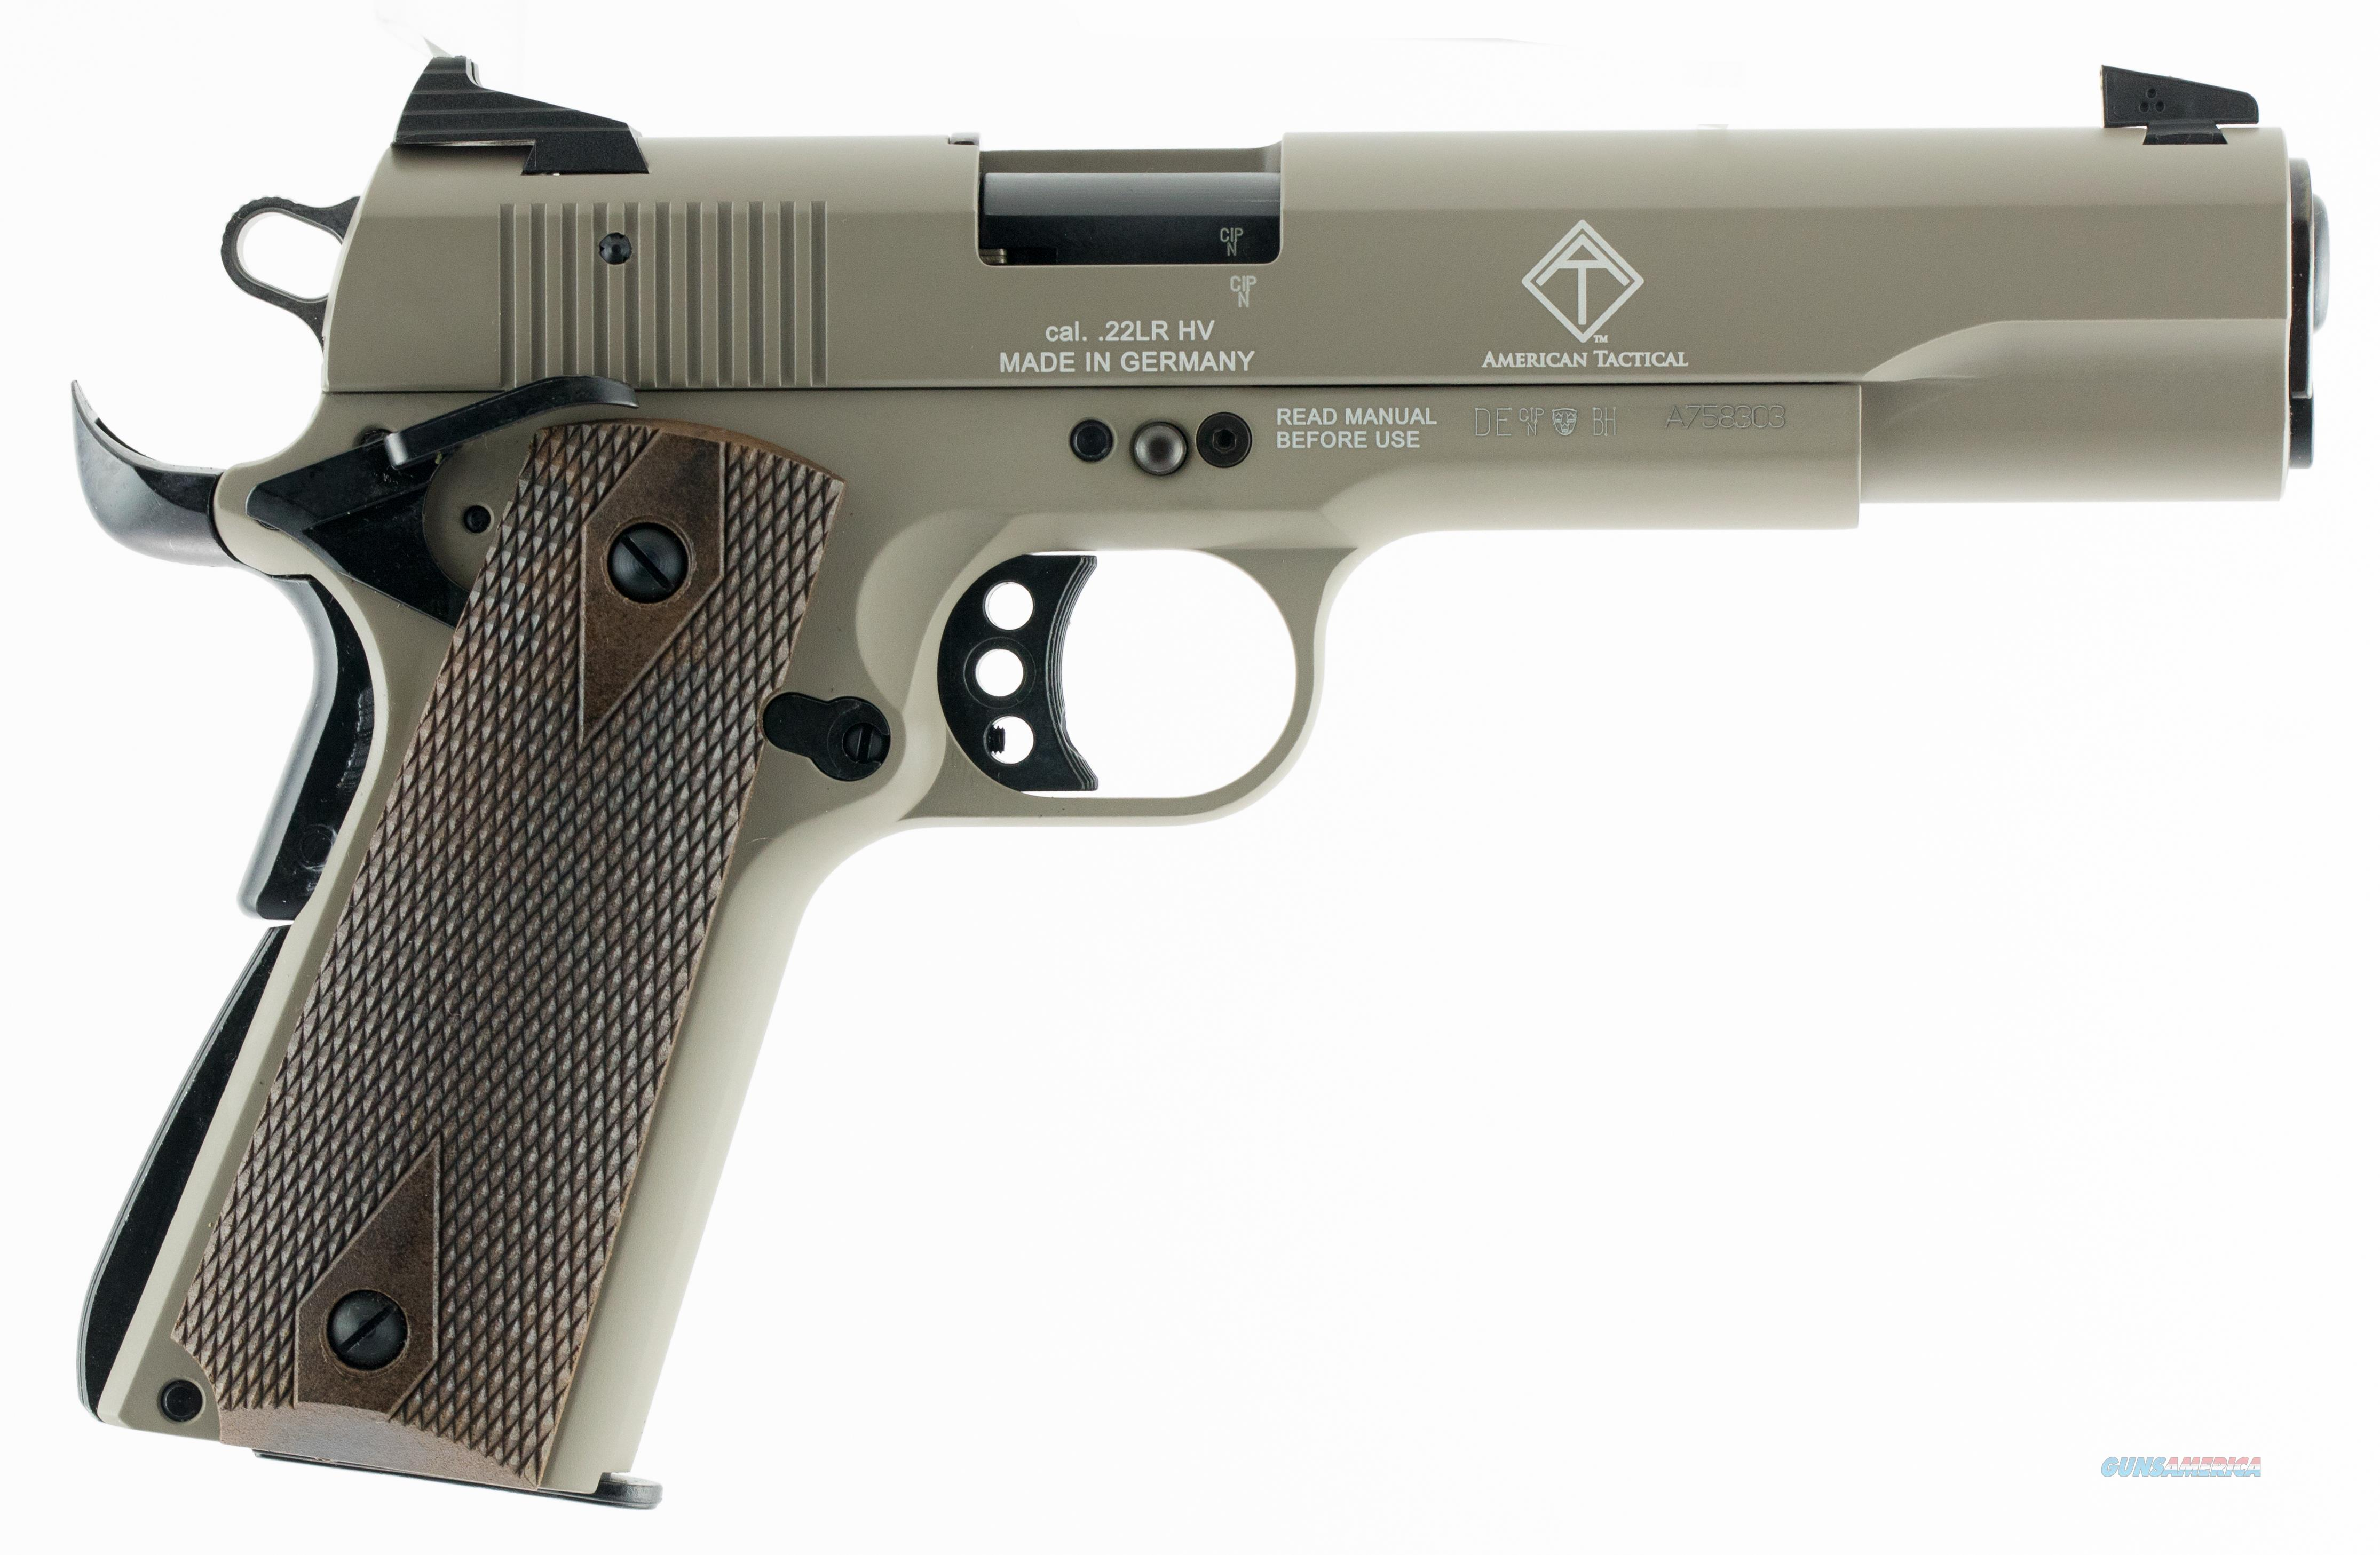 AMERICAN TACTICAL GSG 1911 22LR 5 BLUED WOOD GRIP TAN 10RD GERG2210M1911T  Guns > Pistols > North American Arms Pistols